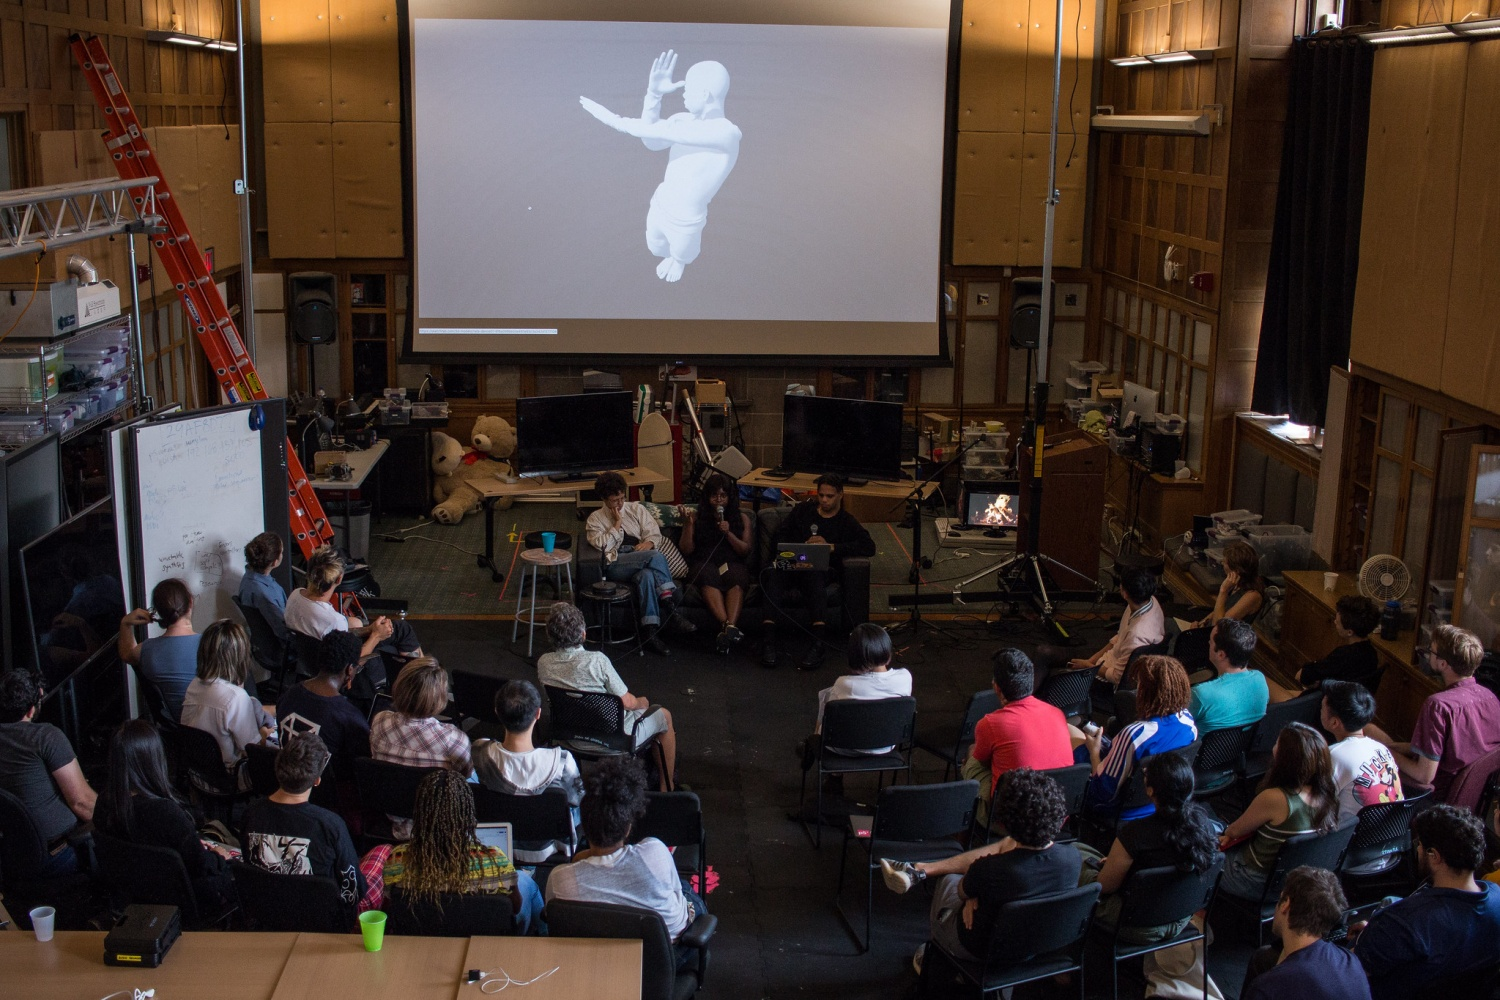 Overhead view of participants listening to a panel of people with an image of a 3d rendered man on it